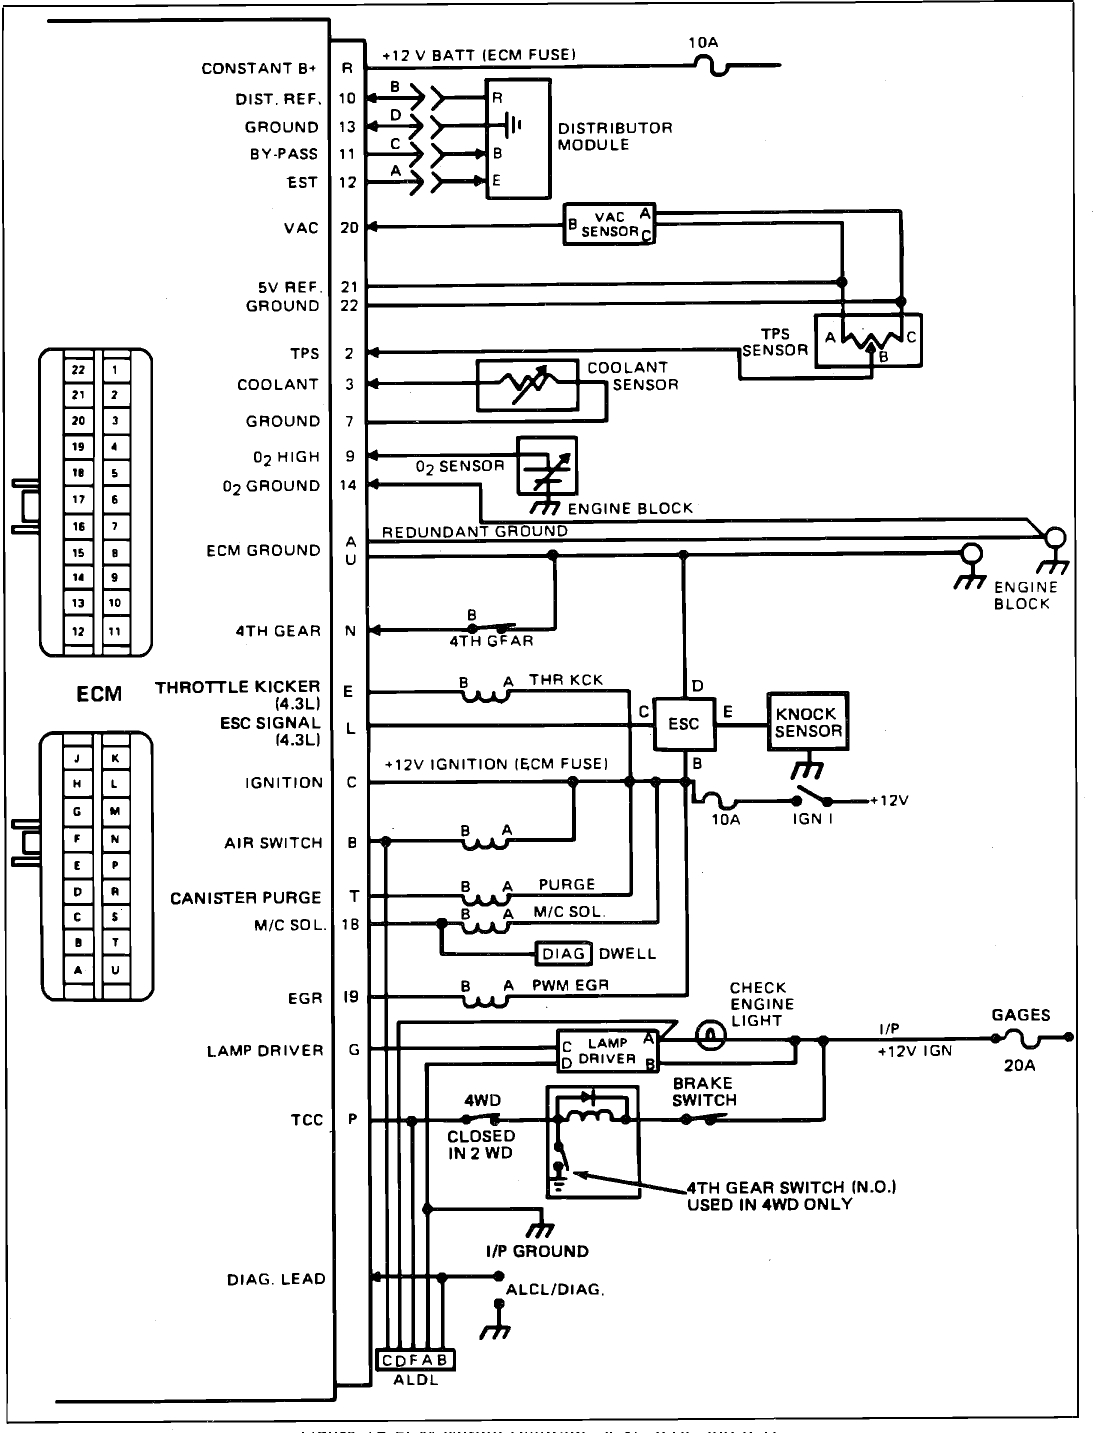 WRG-2833] Ac Wiring Diagram 2006 Chevy on